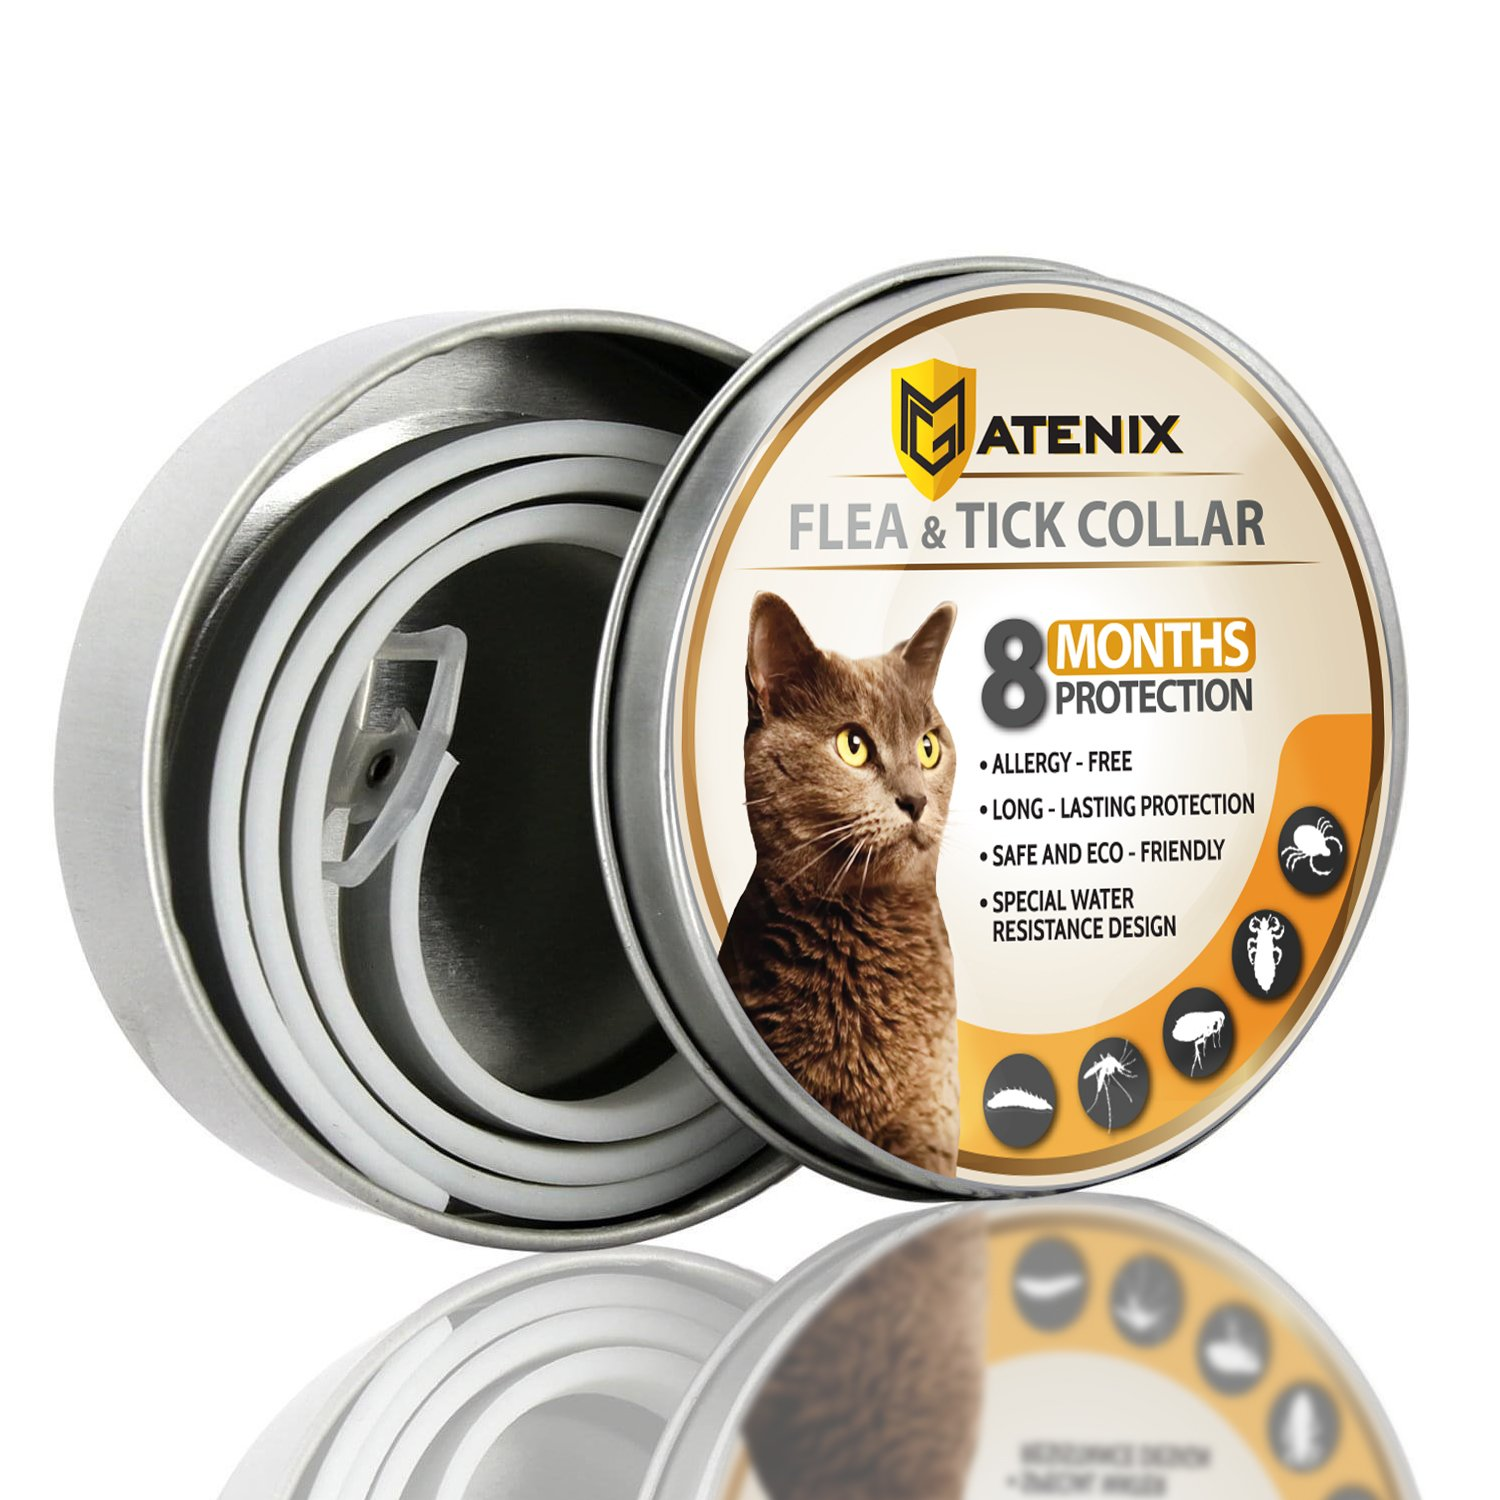 MATENIX Flea and Tick Prevention Collar for Cat – Best Flea Collar Repellent – 8 Month Protection – Environment Friendly with fully Natural Ingredients.